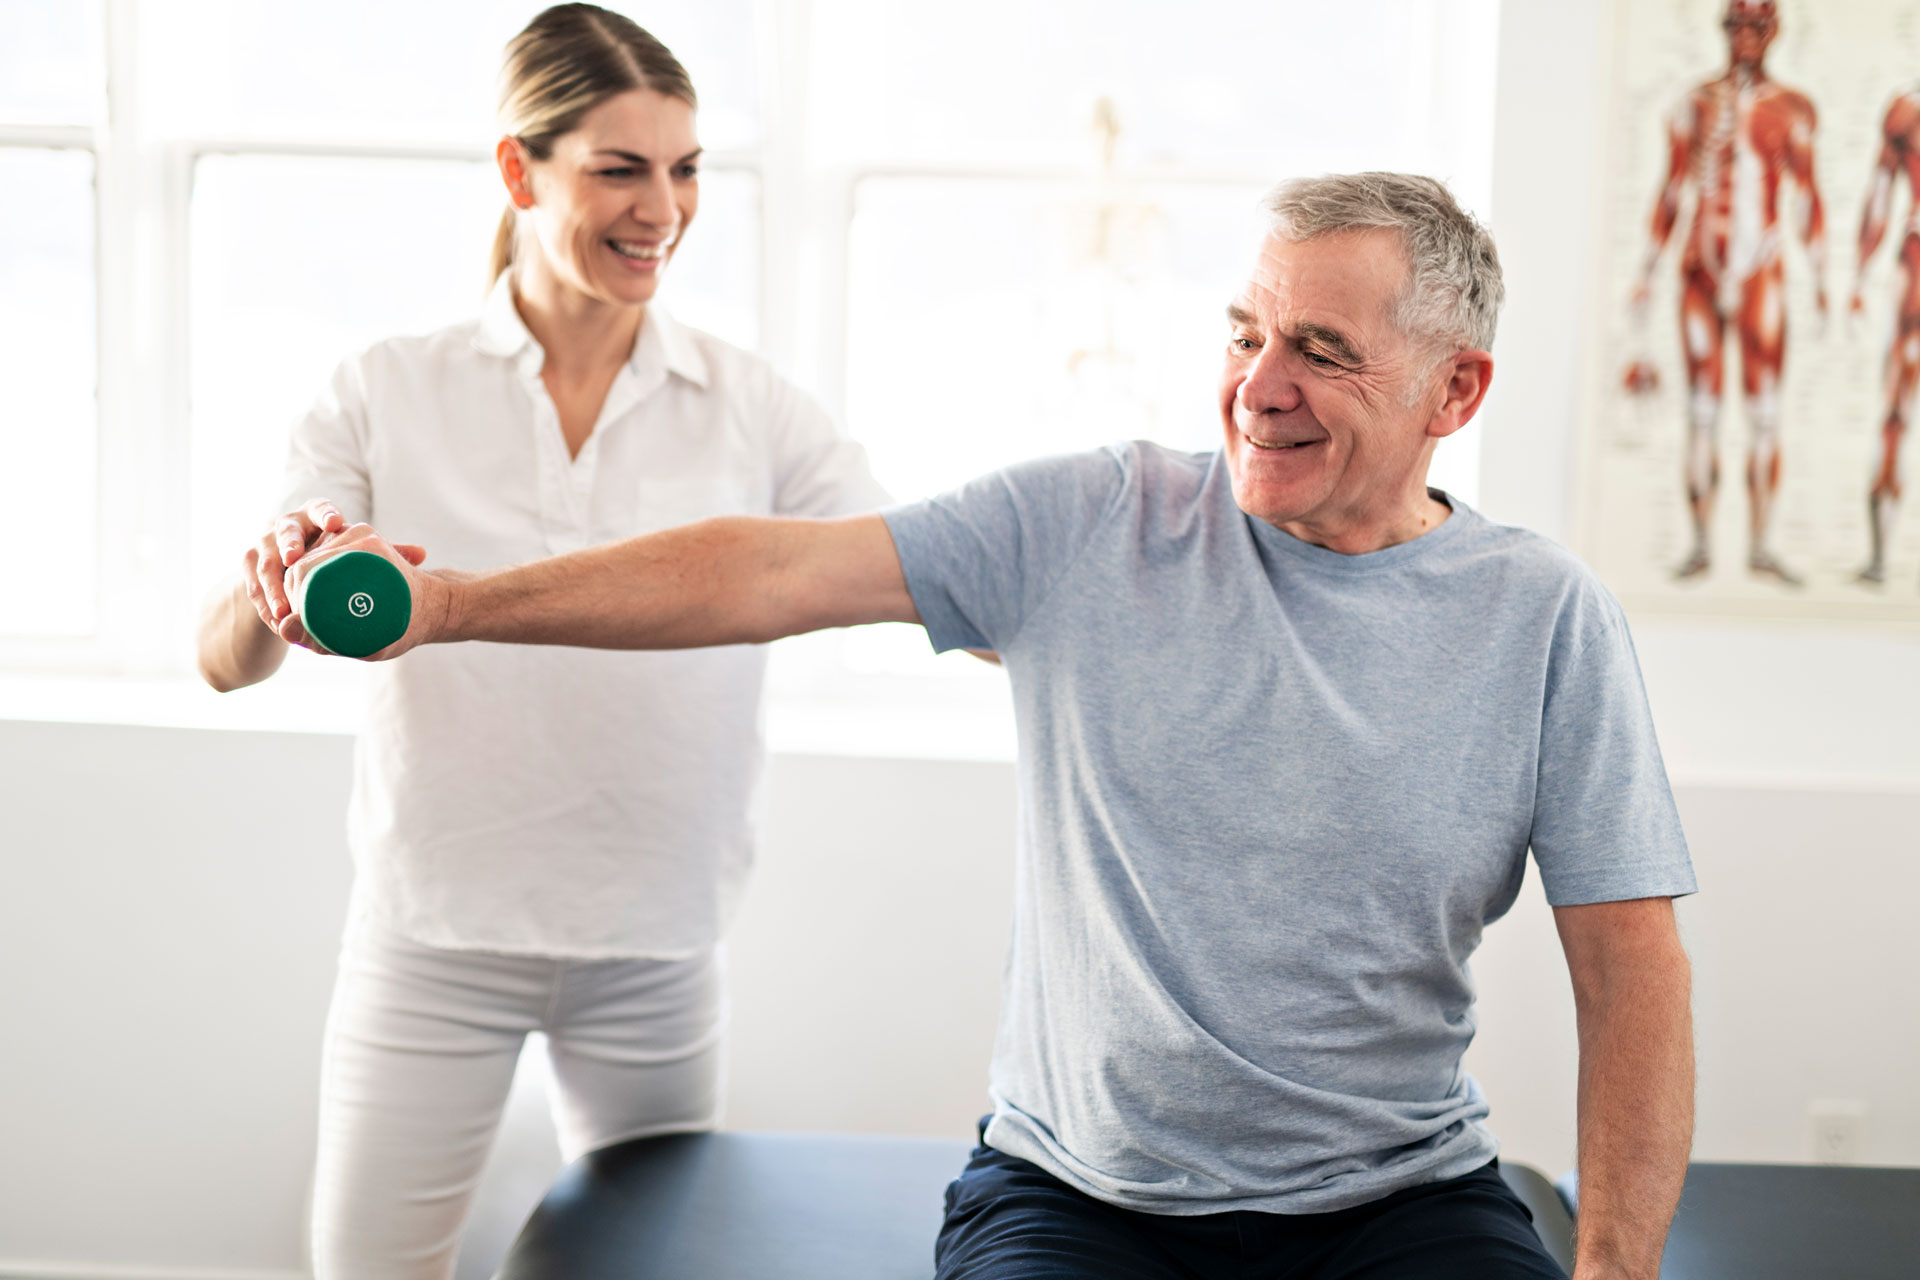 senior man working on physical therapy exercises with woman supervising